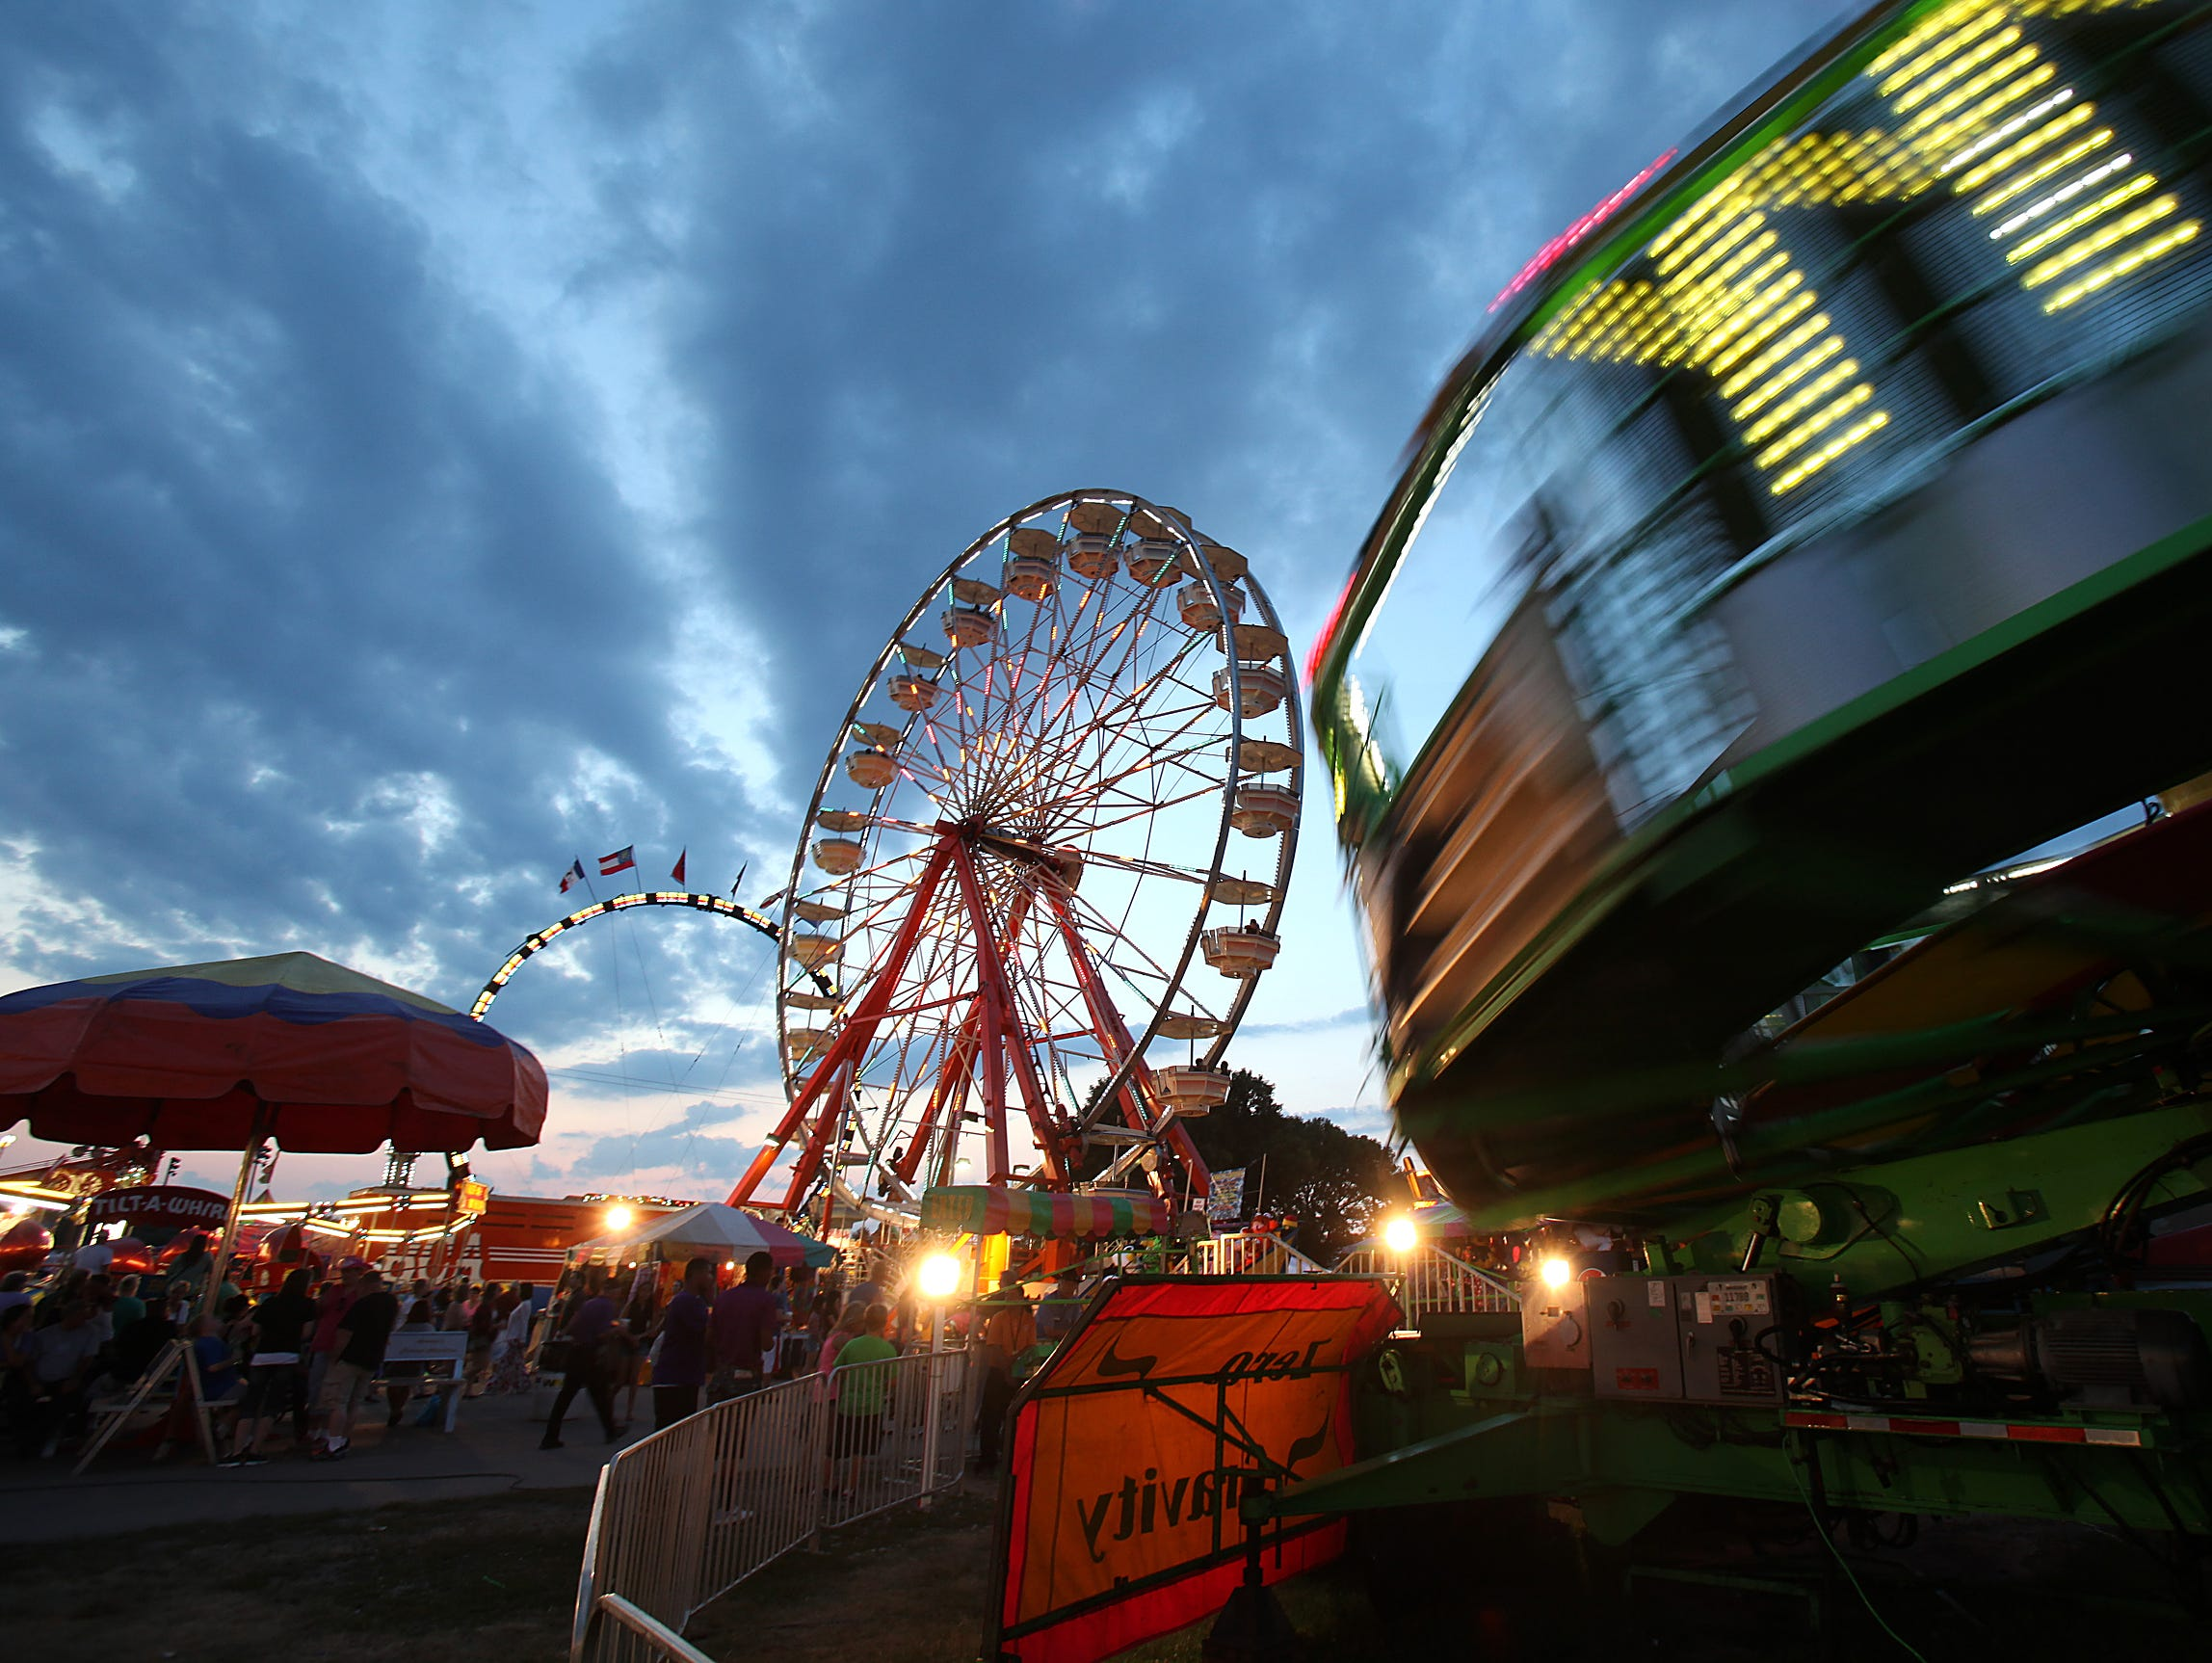 Win a four pack of admission tickets plus a pair of unlimited ride wristbands to the Fair. Enter 7/2-7/29.